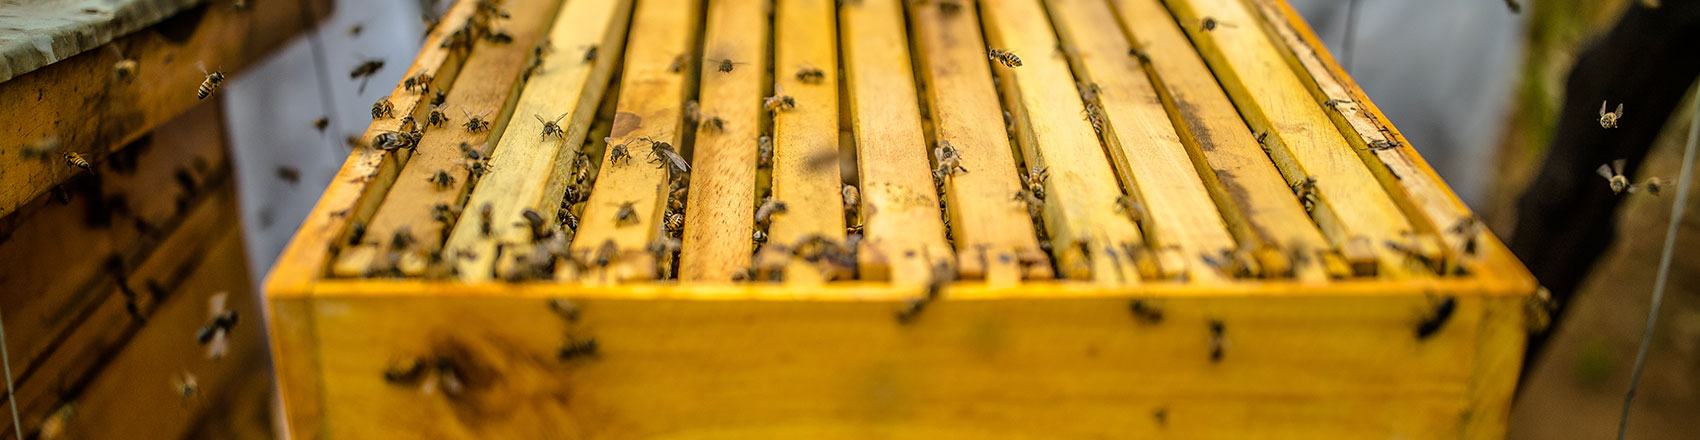 A yellow beehive frame covered in bees entering and exiting their hive.